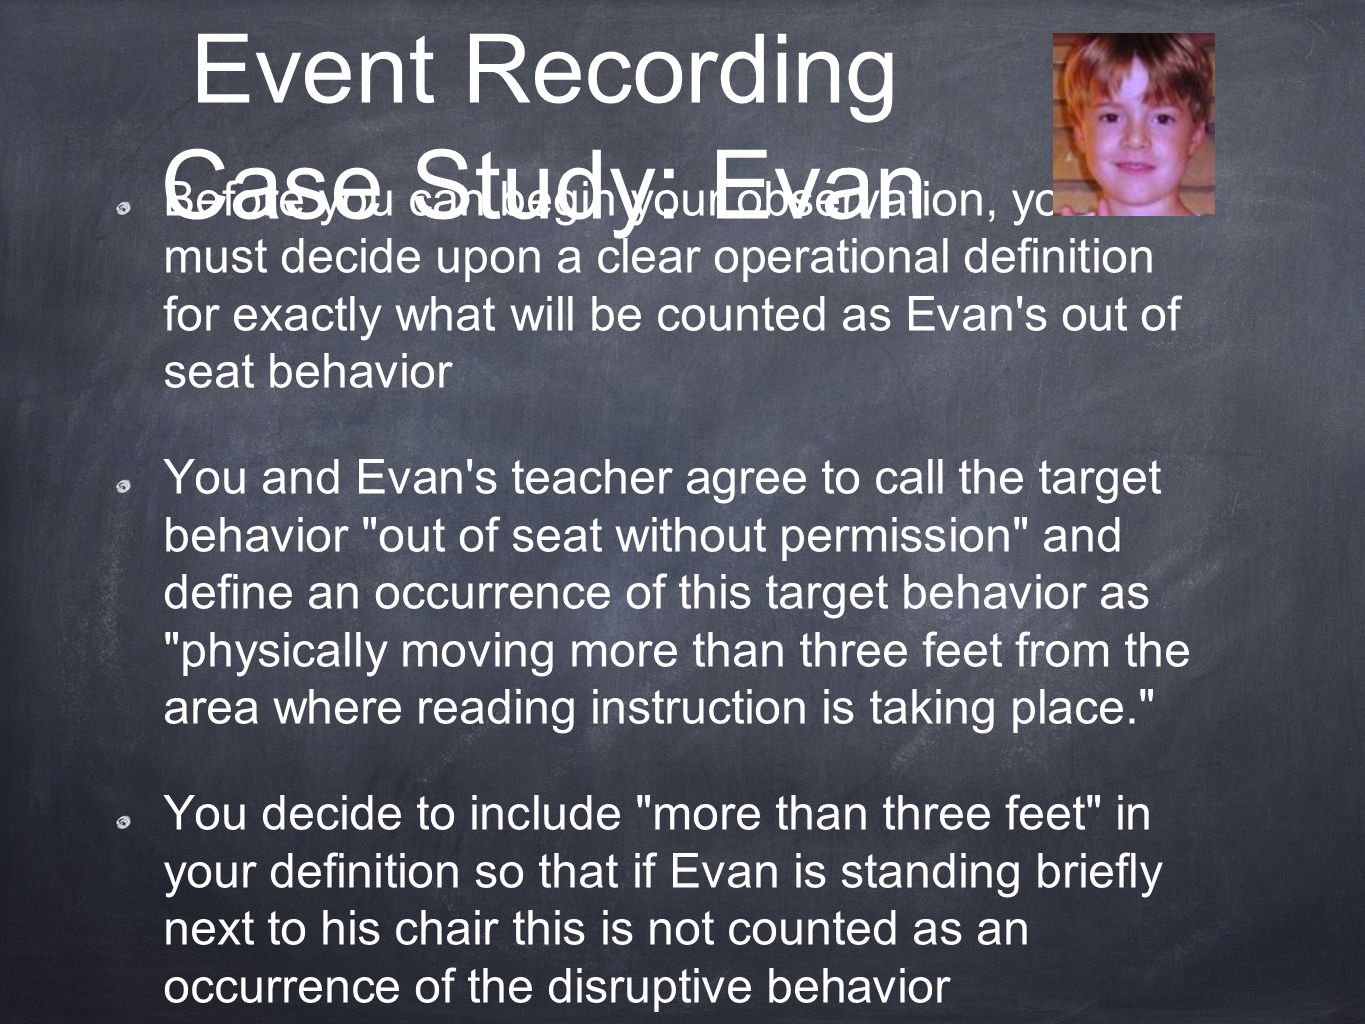 Before you can begin your observation, you must decide upon a clear operational definition for exactly what will be counted as Evan s out of seat behavior You and Evan s teacher agree to call the target behavior out of seat without permission and define an occurrence of this target behavior as physically moving more than three feet from the area where reading instruction is taking place. You decide to include more than three feet in your definition so that if Evan is standing briefly next to his chair this is not counted as an occurrence of the disruptive behavior Event Recording Case Study: Evan